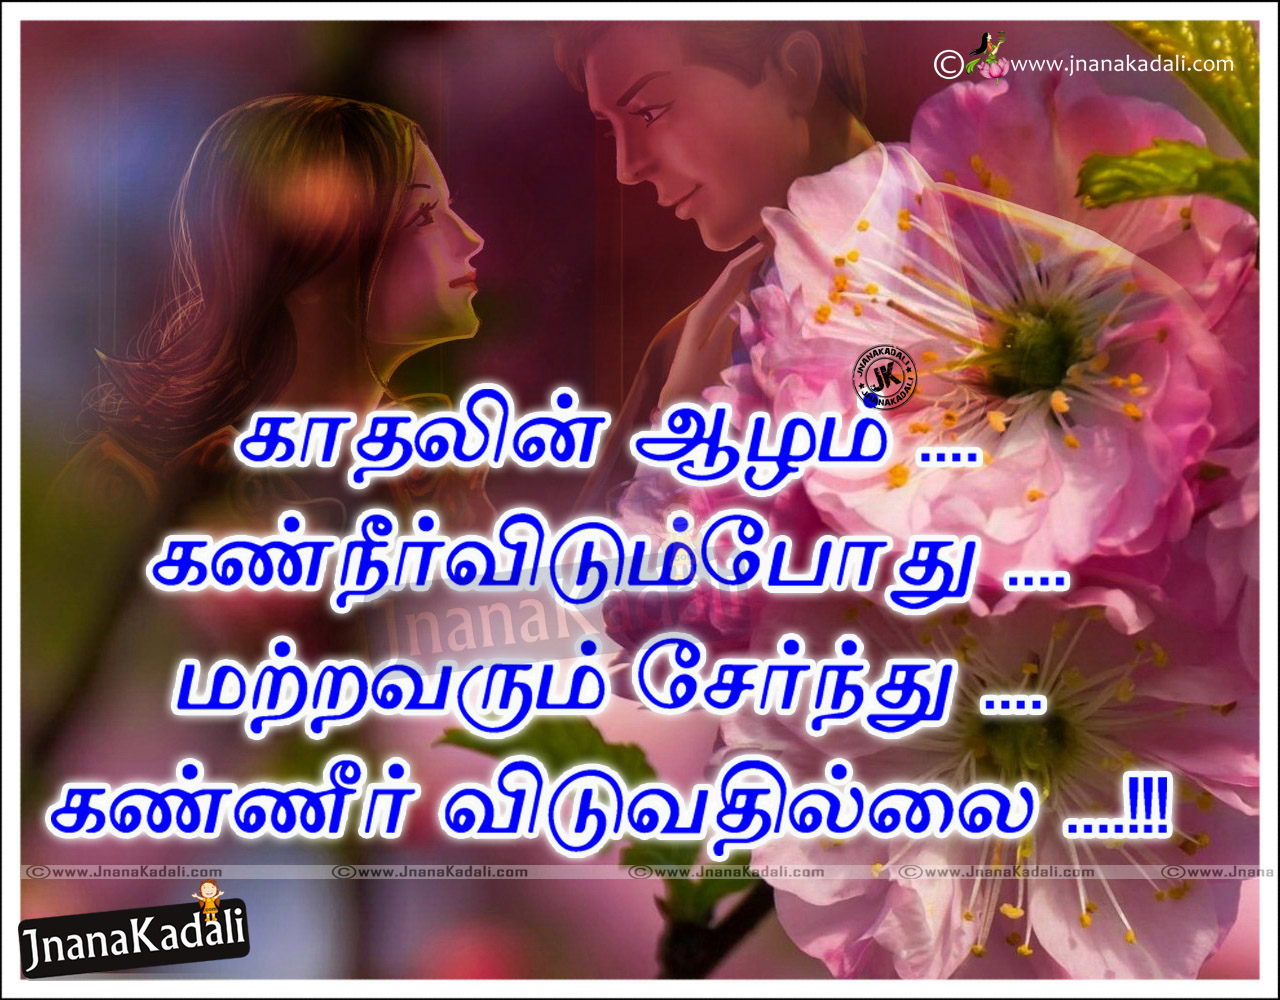 New Tamil Kadhal Kavithai Cute Love Sayings With Pictures Jnana